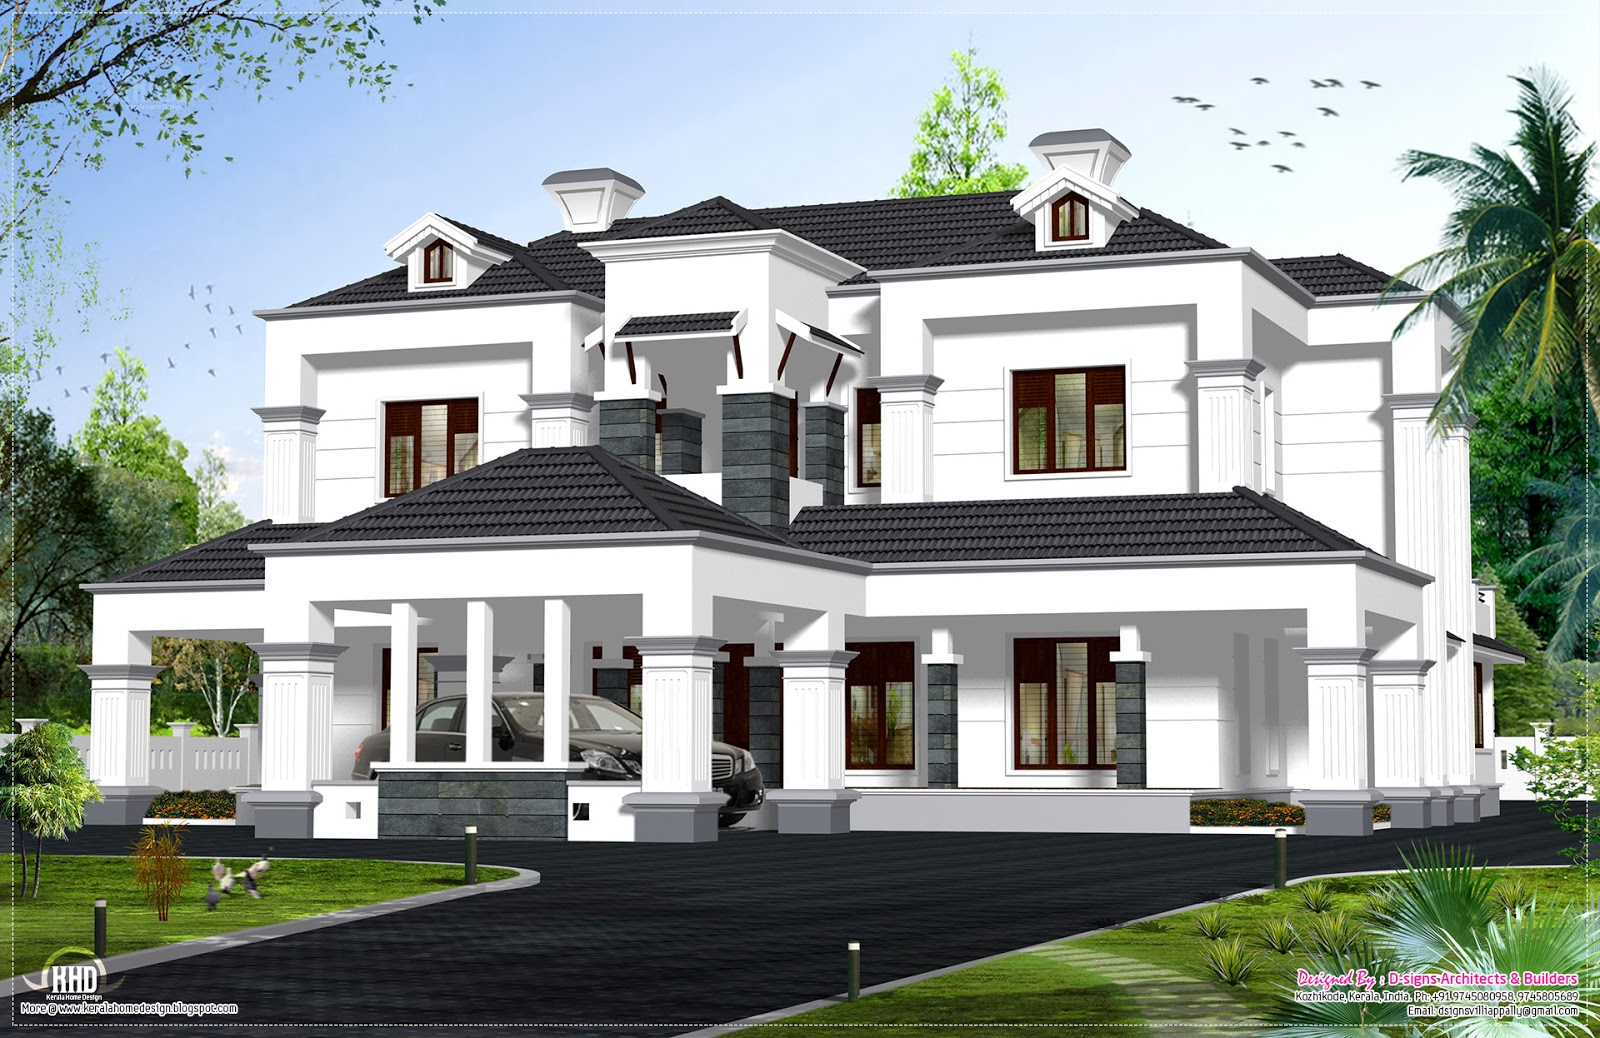 victorian style homes victorian model luxury house pix victorian style homes